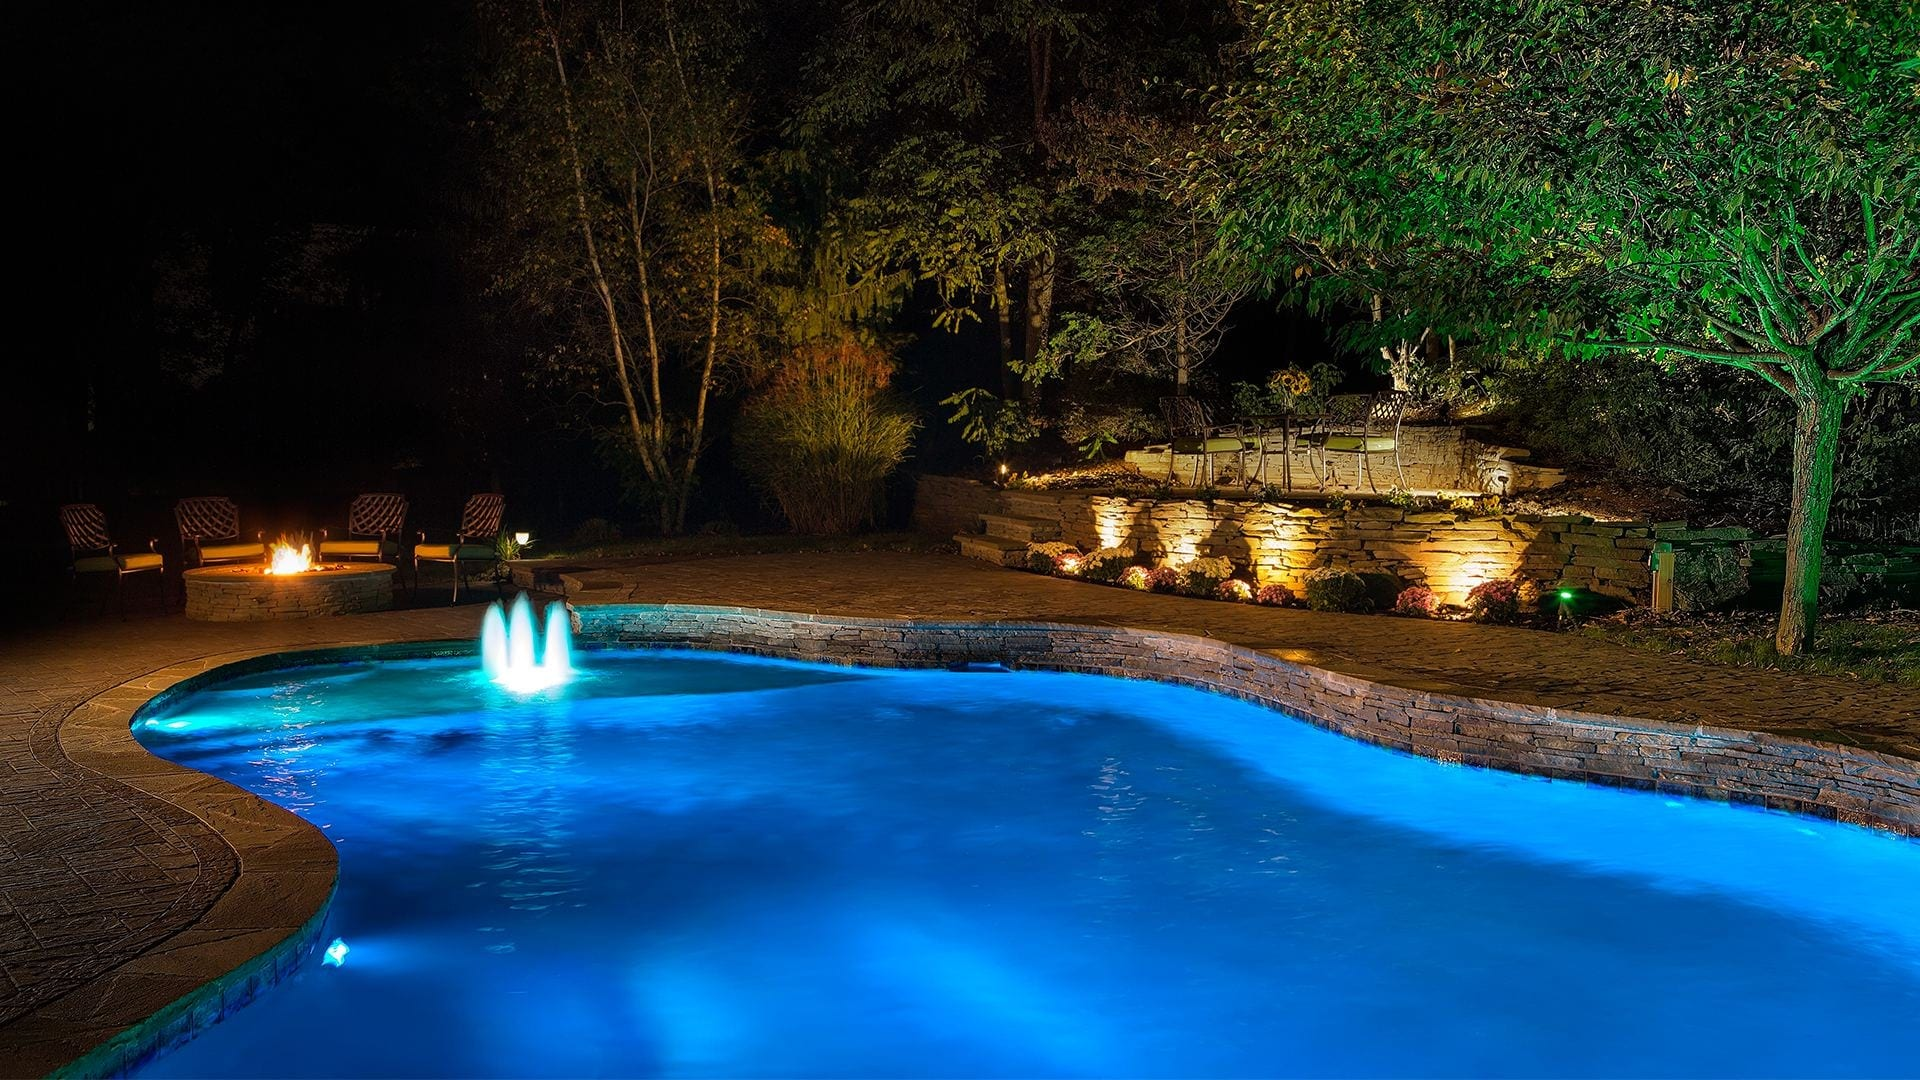 Pool Construction Houston, Texas - Creative Pool Designs Express